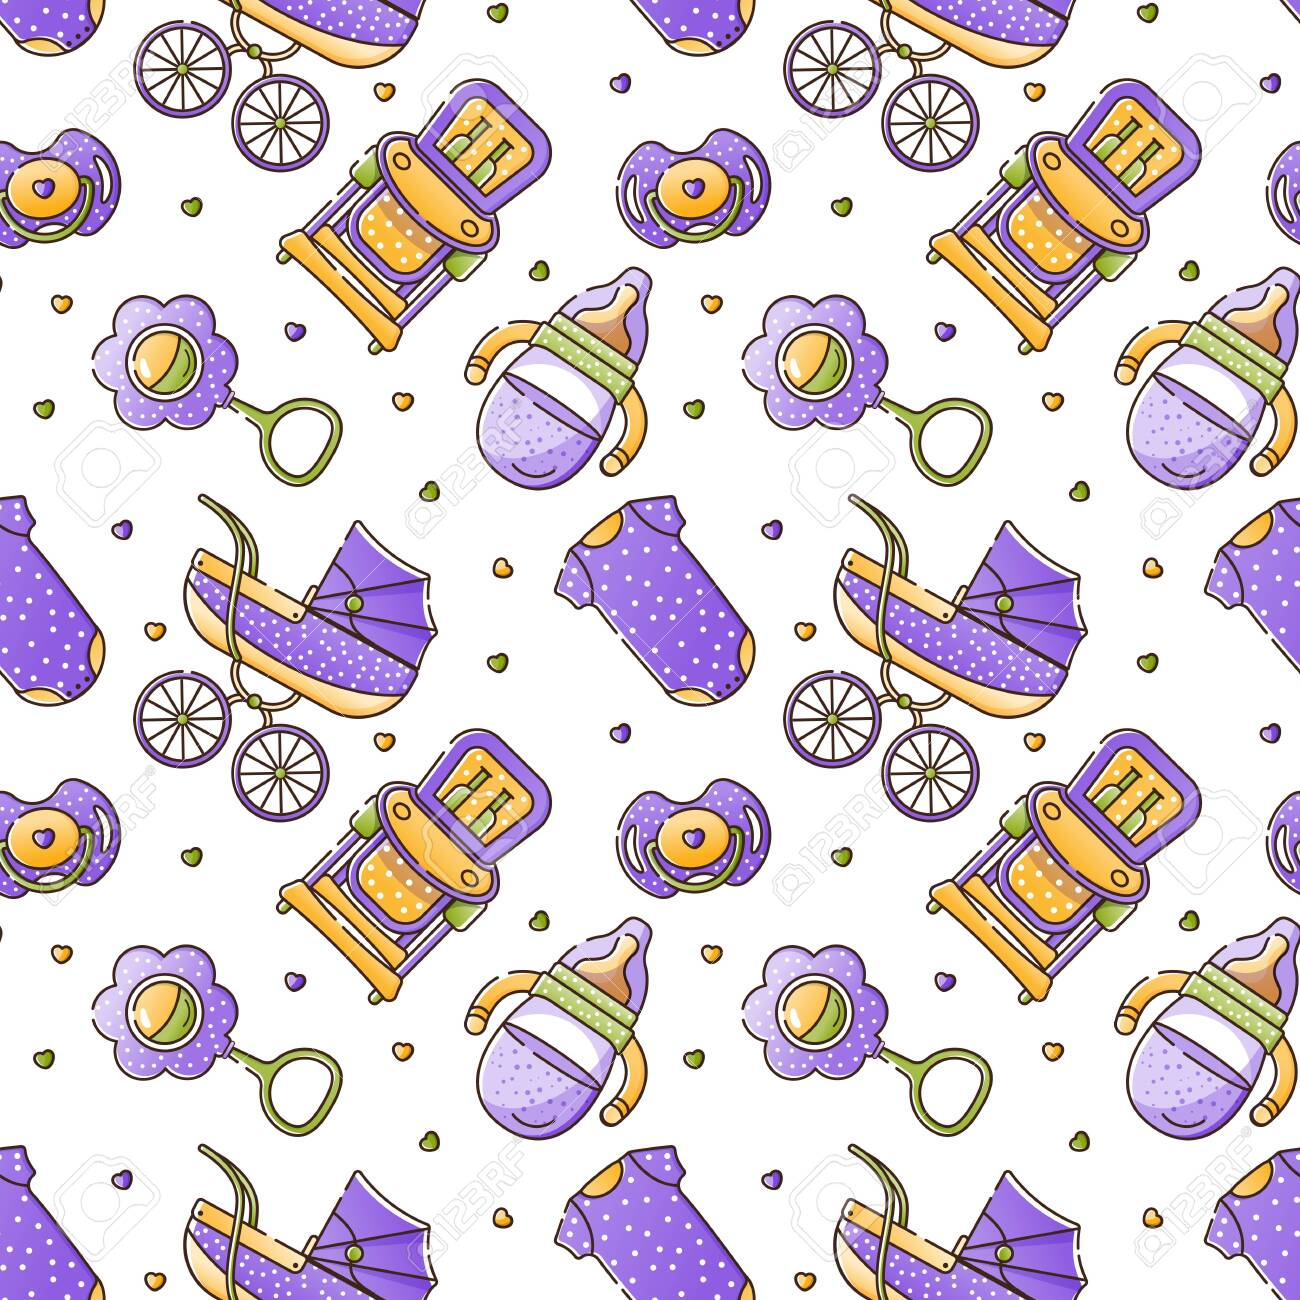 Vector Seamless Color Pattern With Baby Accessories For Newborn Royalty Free Cliparts Vectors And Stock Illustration Image 144721937